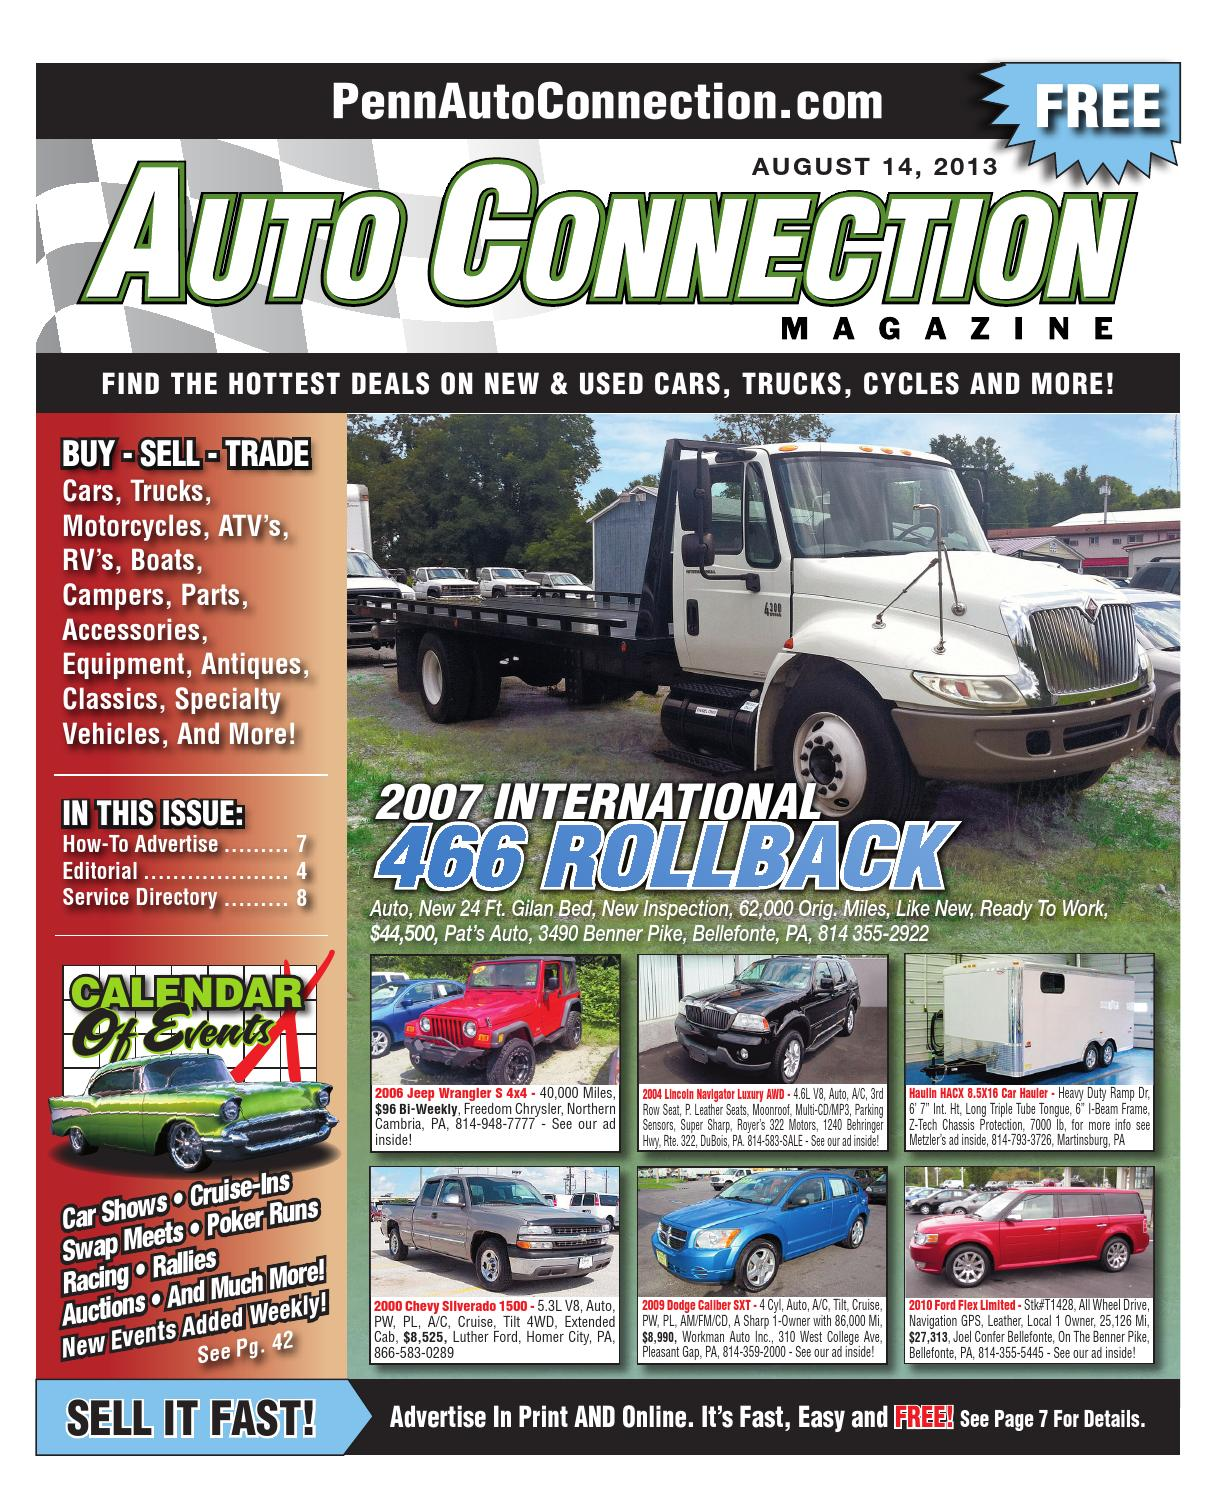 08 14 13 Auto Connection Magazine By Issuu 9910 Vw Beetle Golf Jetta Sending Unit Electric Gas Fuel Pump